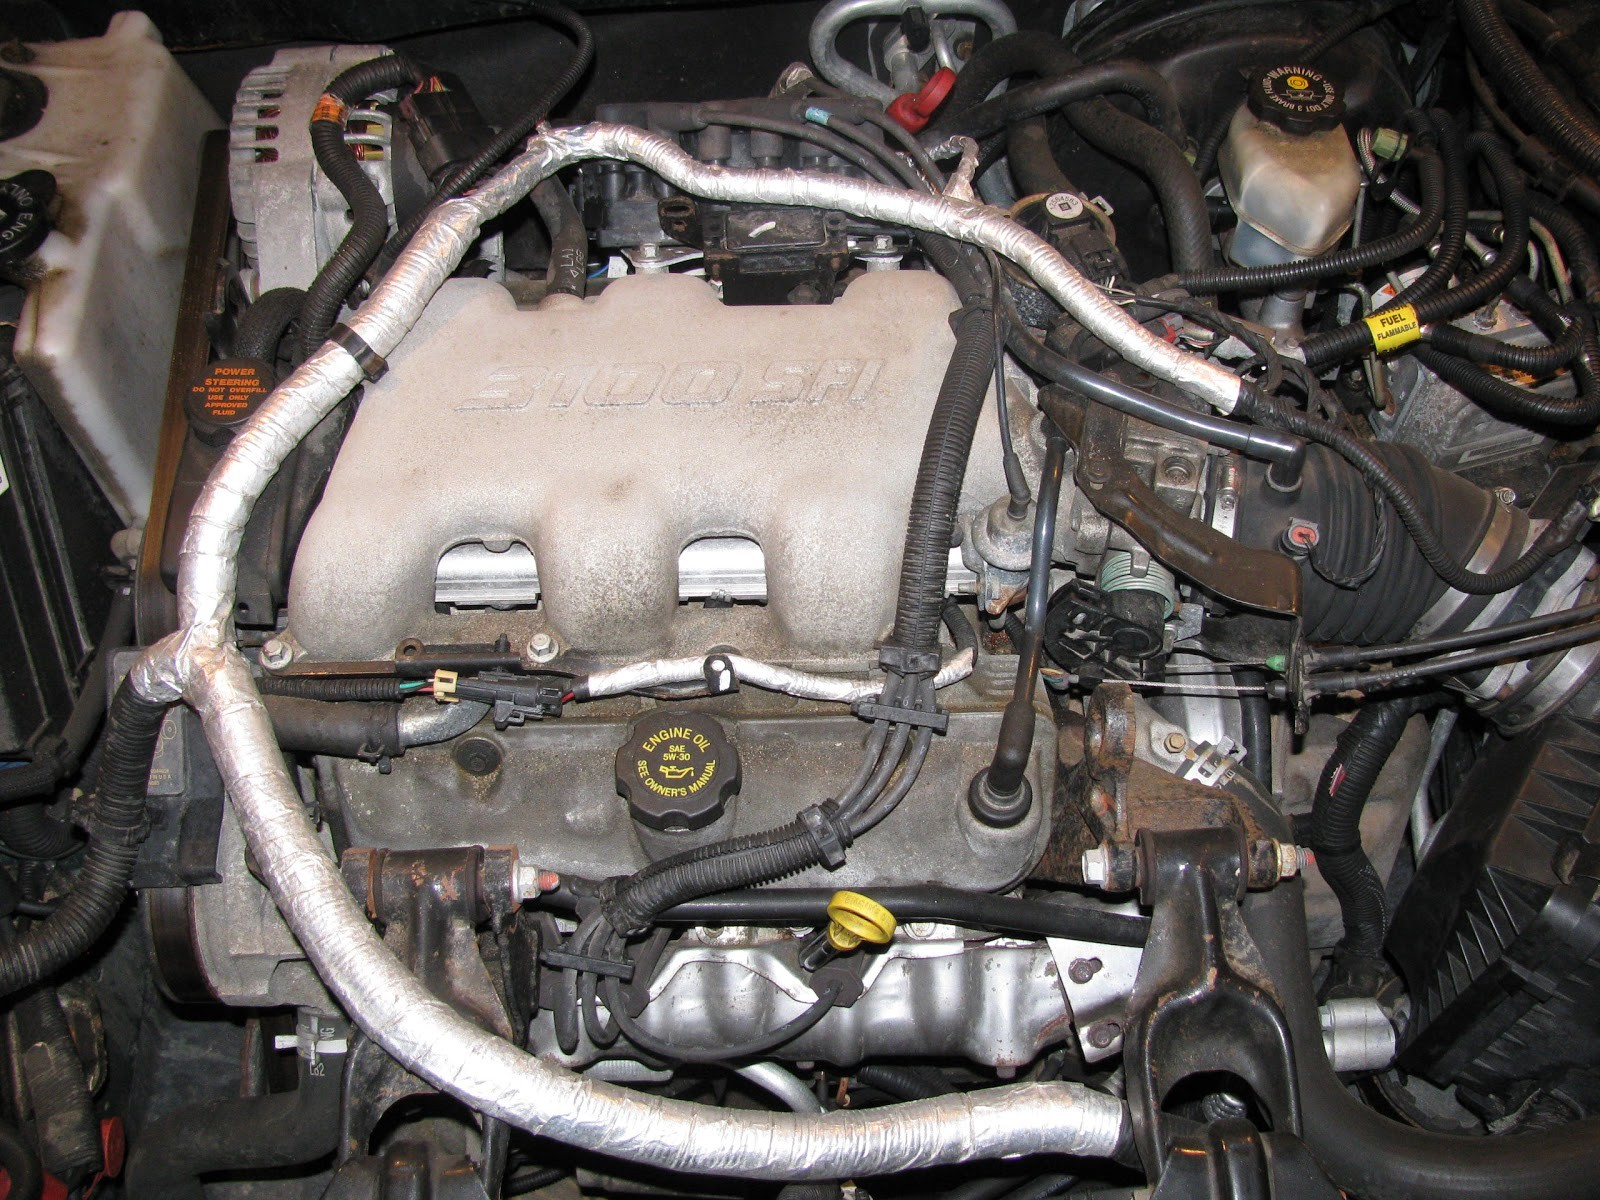 Pontiac 3800 Engine Diagram 3 8 Wiring Library Fuel Injected 305 The Original Mechanic 1l Gm Replacing Intake Manifold Of